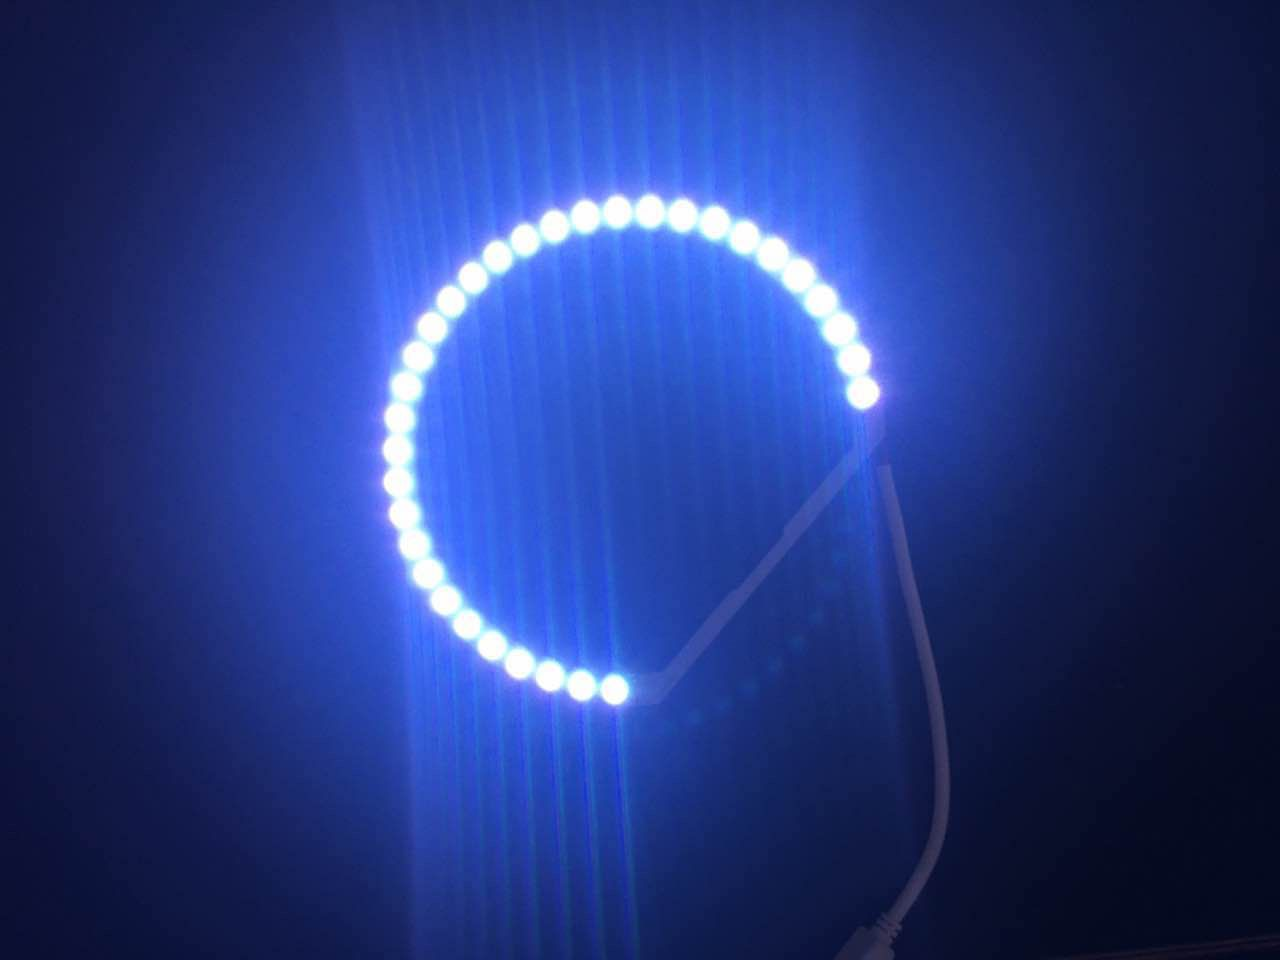 Led Light Strips For Trucks Auto Led Lights Strip  Waterproof Led Strips For Auto Decorations